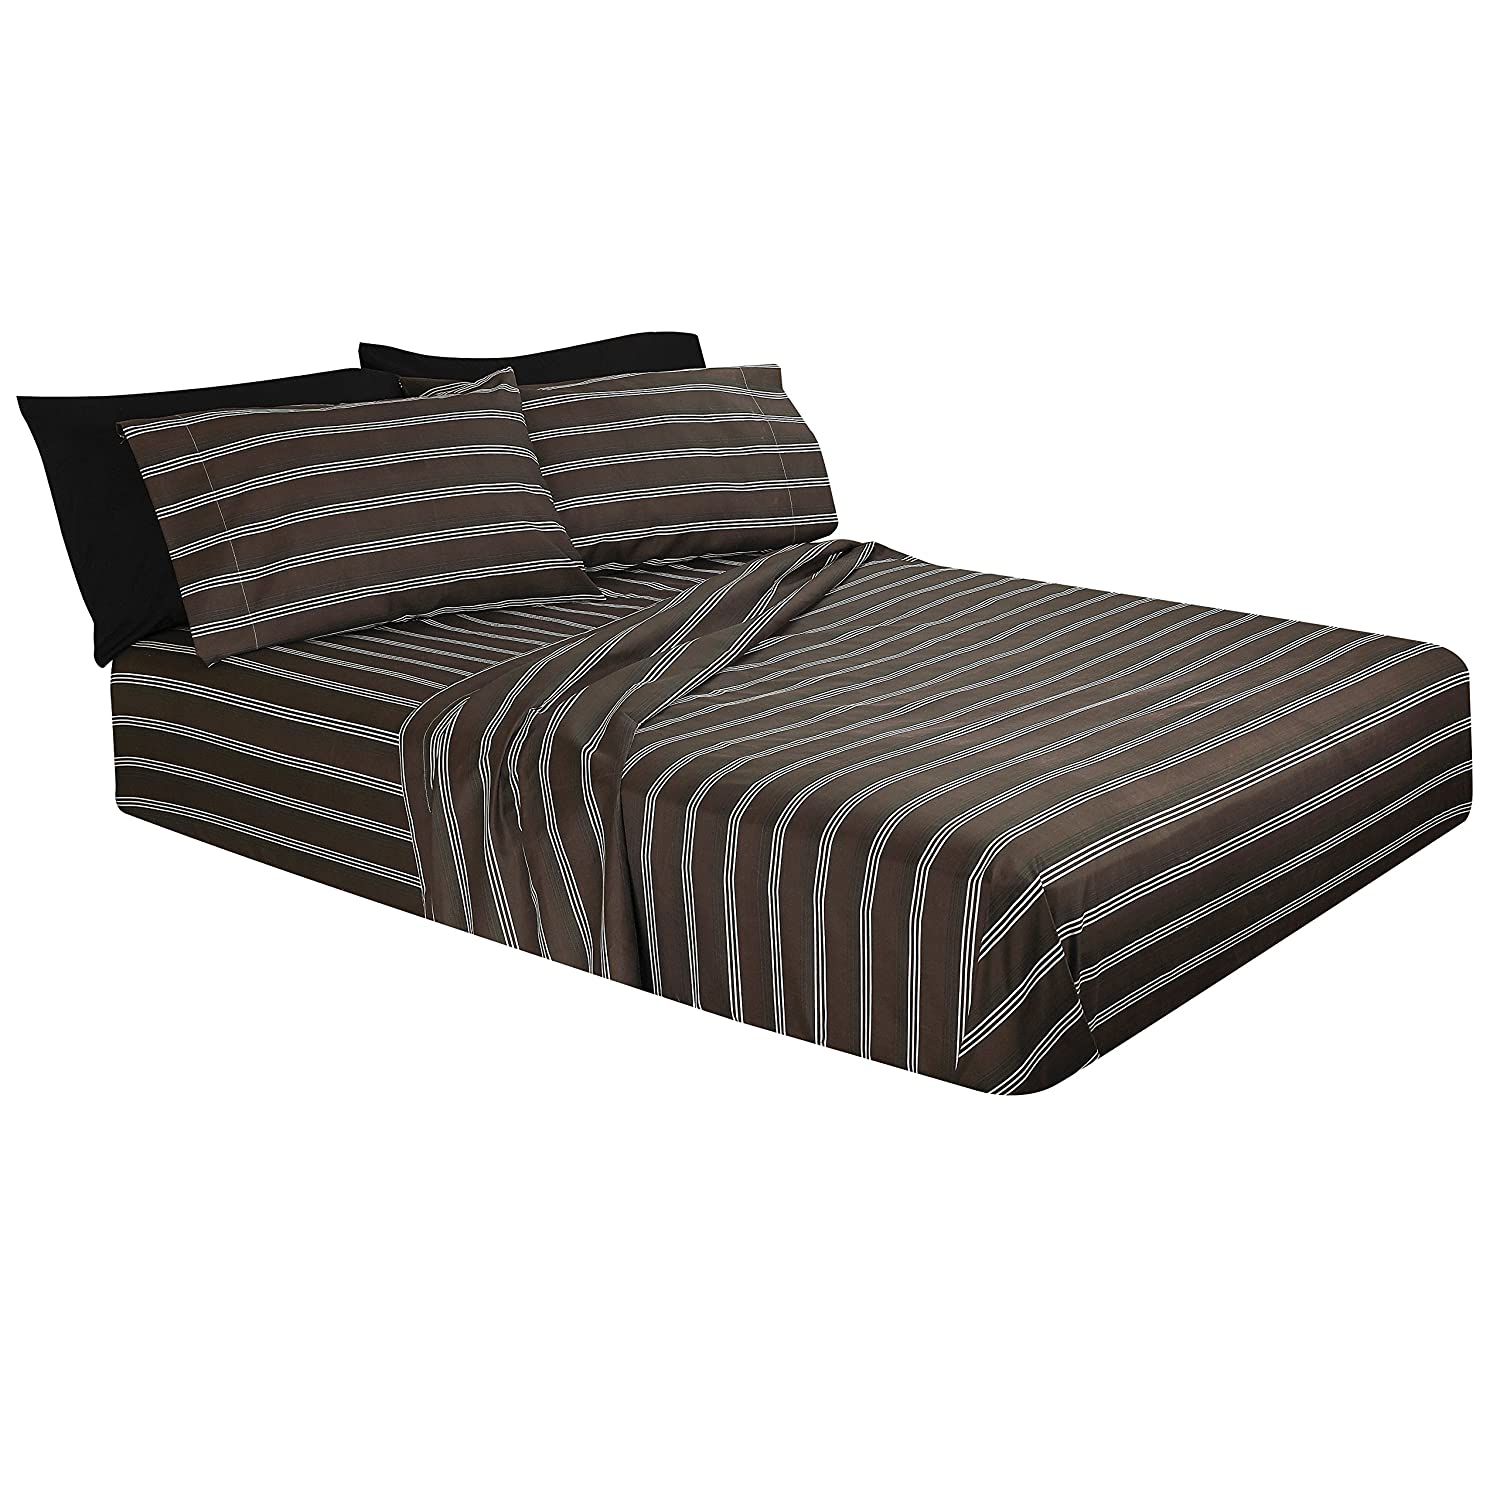 6 Piece Bed Sheet 100/% Soft Brushed Microfiber Hypoallergenic Queen Brown Burgundy and Creme Stripe with Deep Pocket Fitted Sheet Printed Bed Sheet Set 1800 Luxury Bedding Collection.